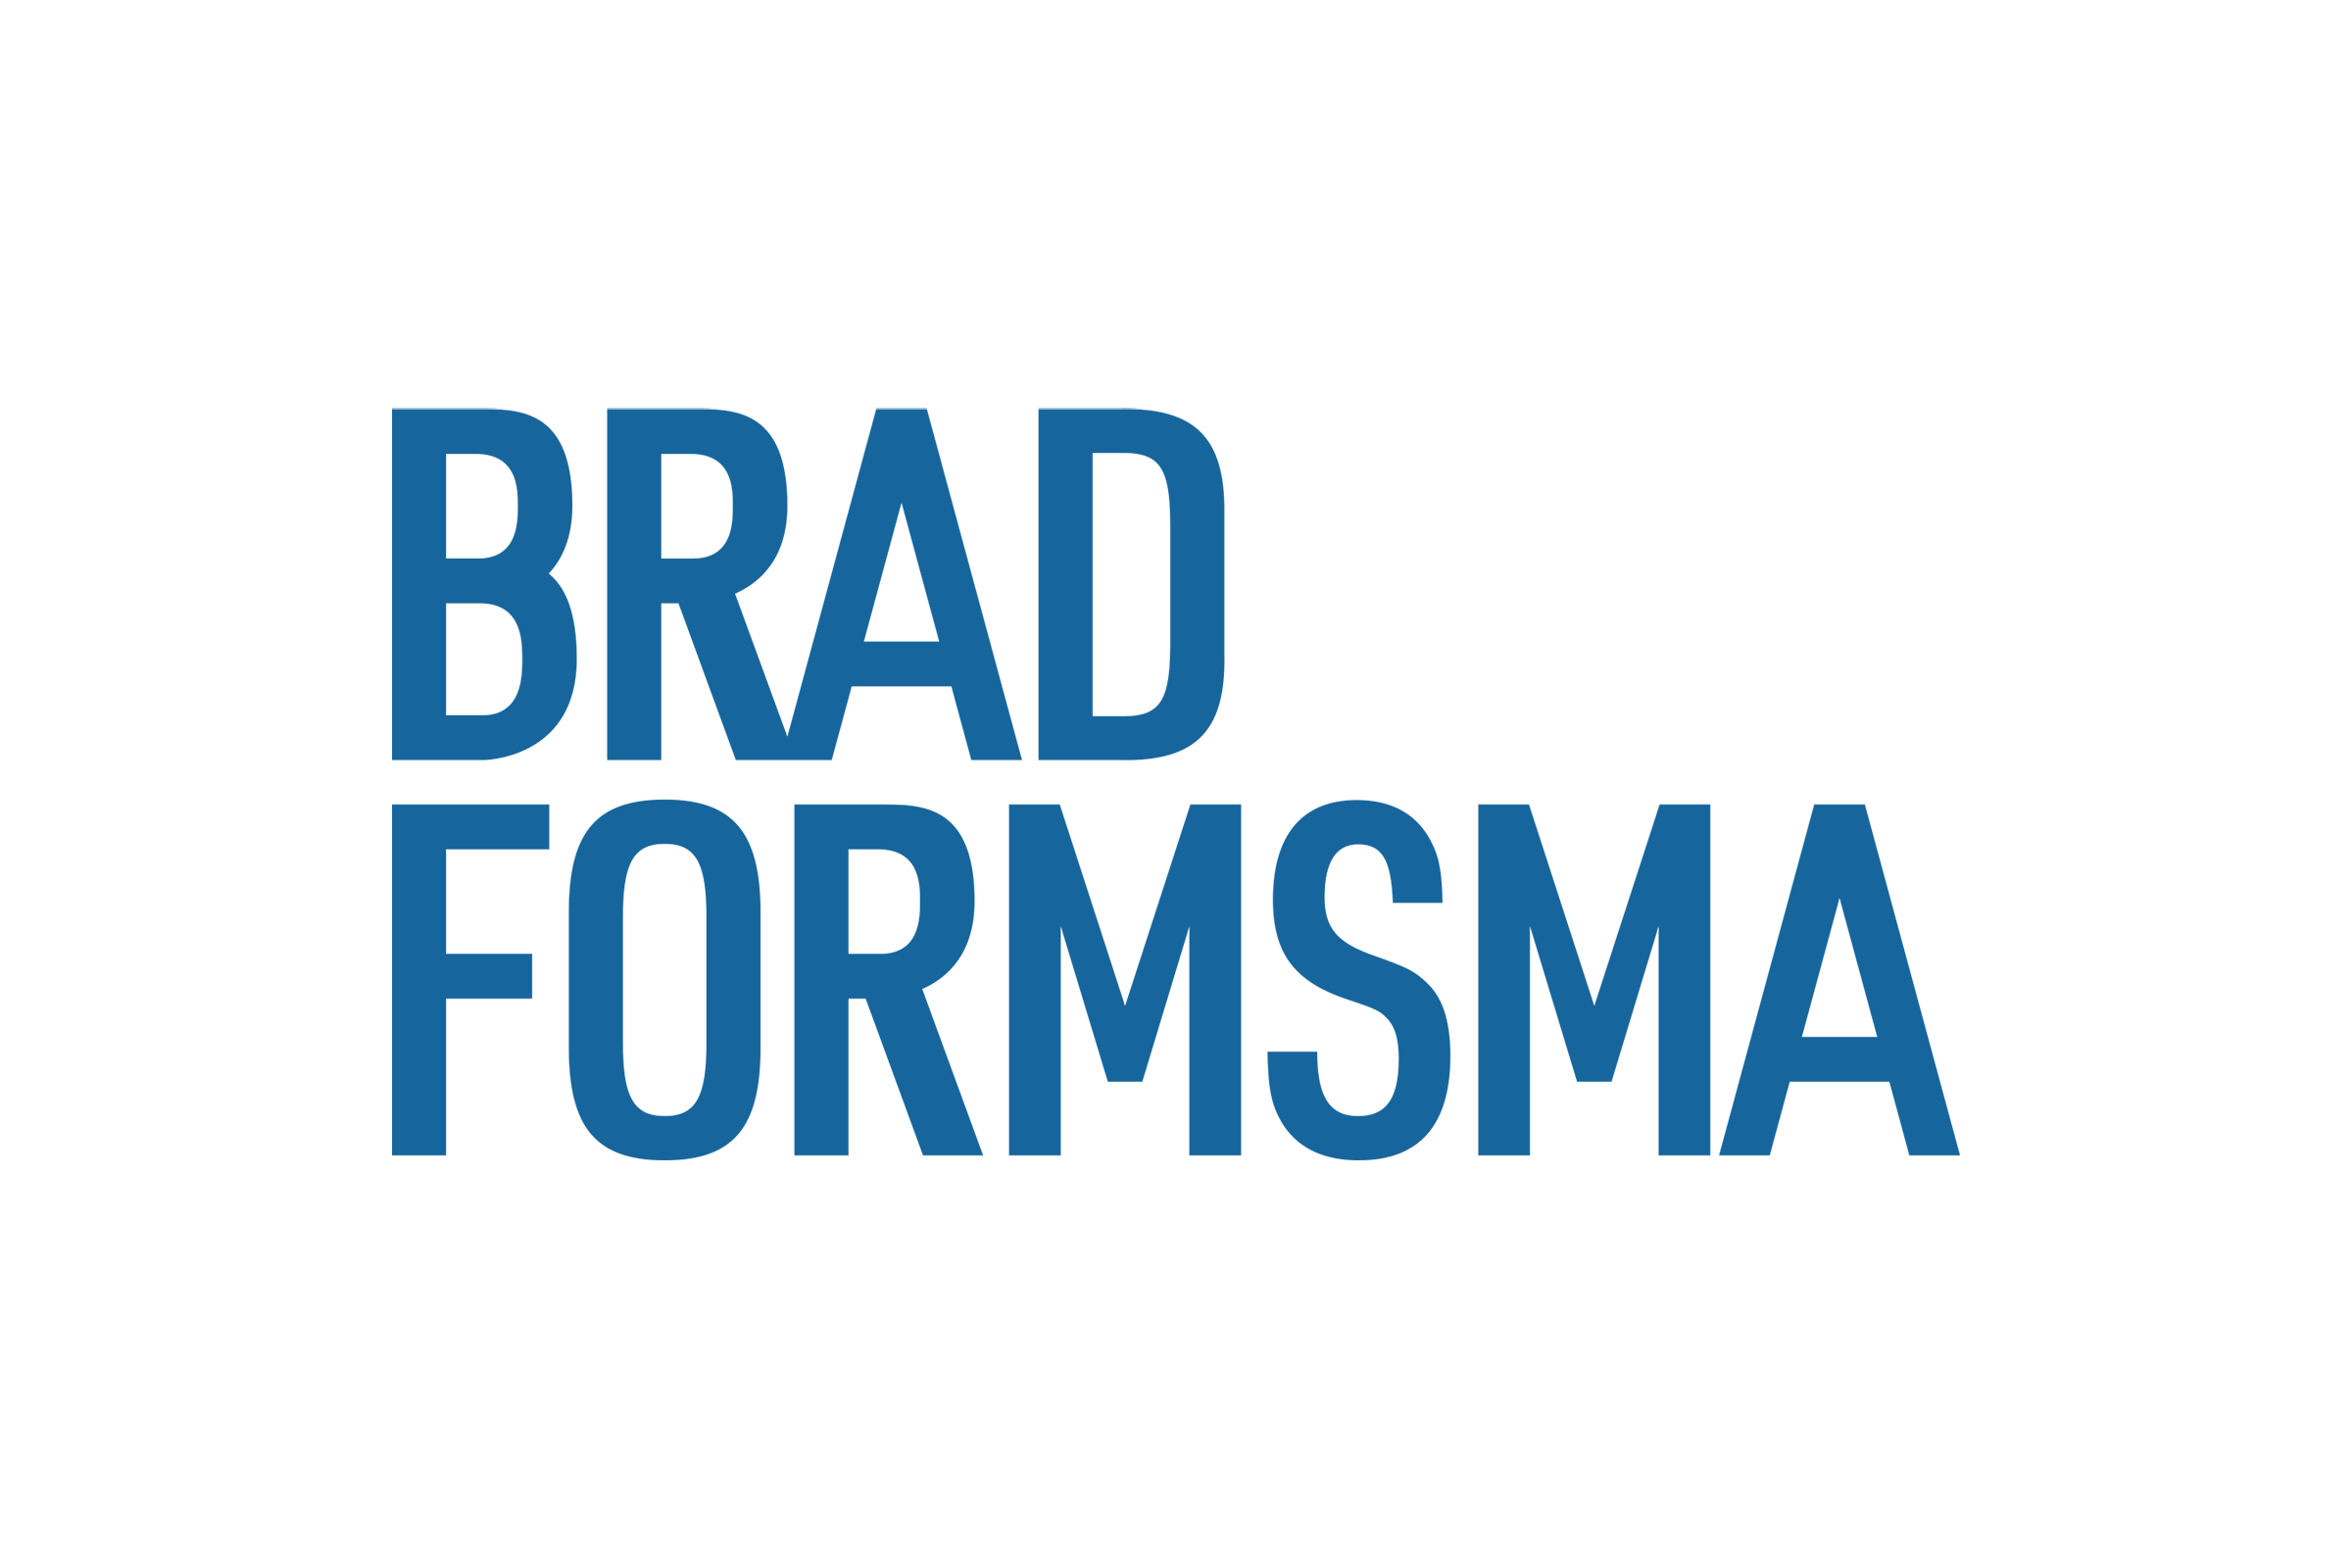 BF_Wordmark-Stacked_Color.png